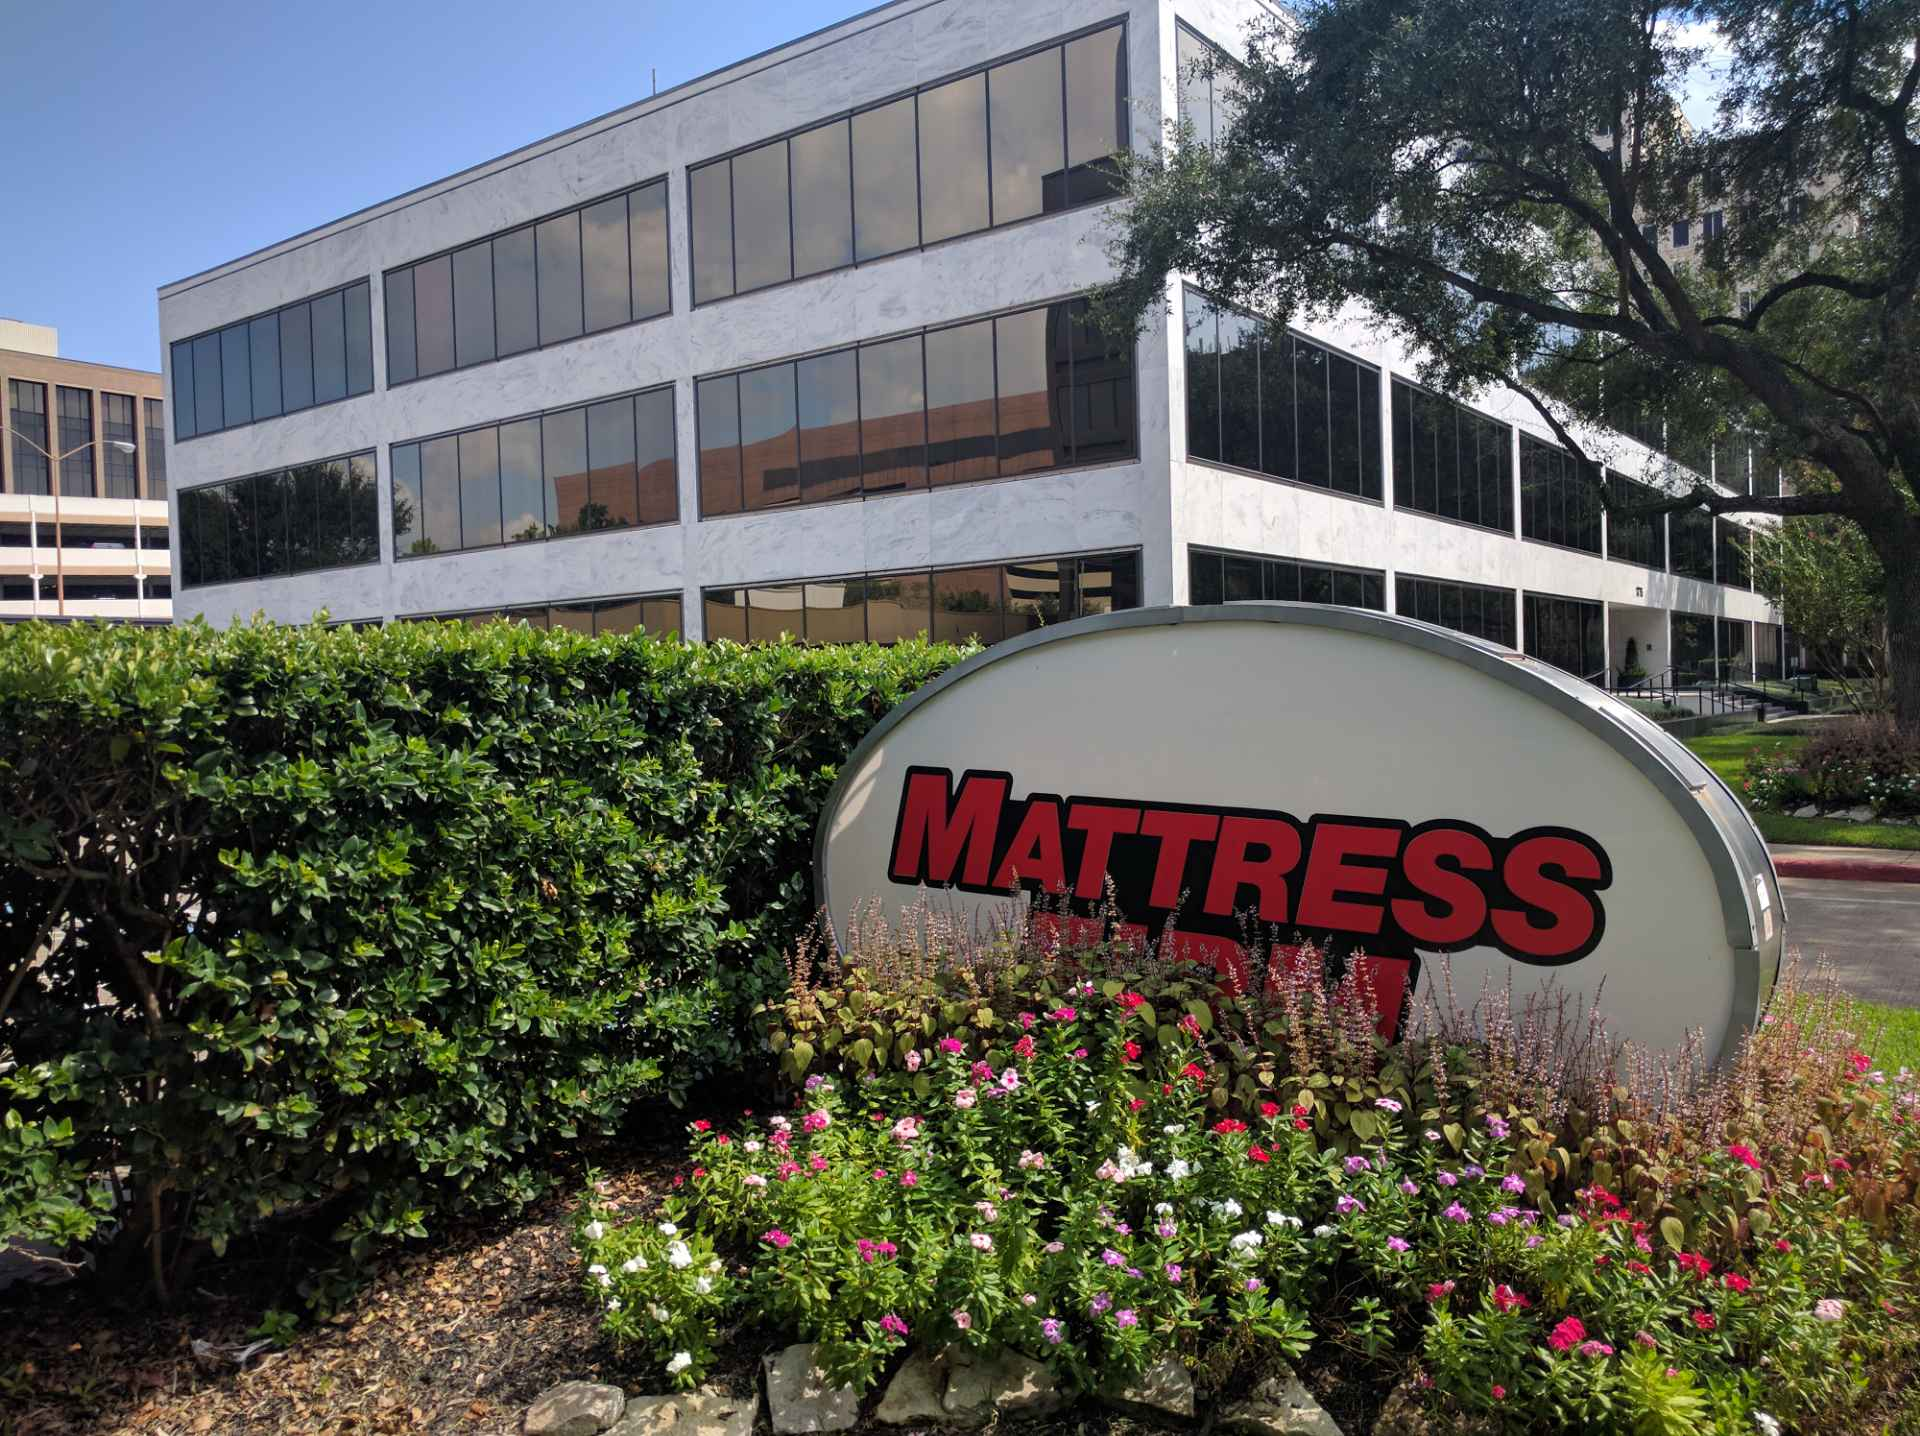 Mattress Firm office in Houston, Texas.